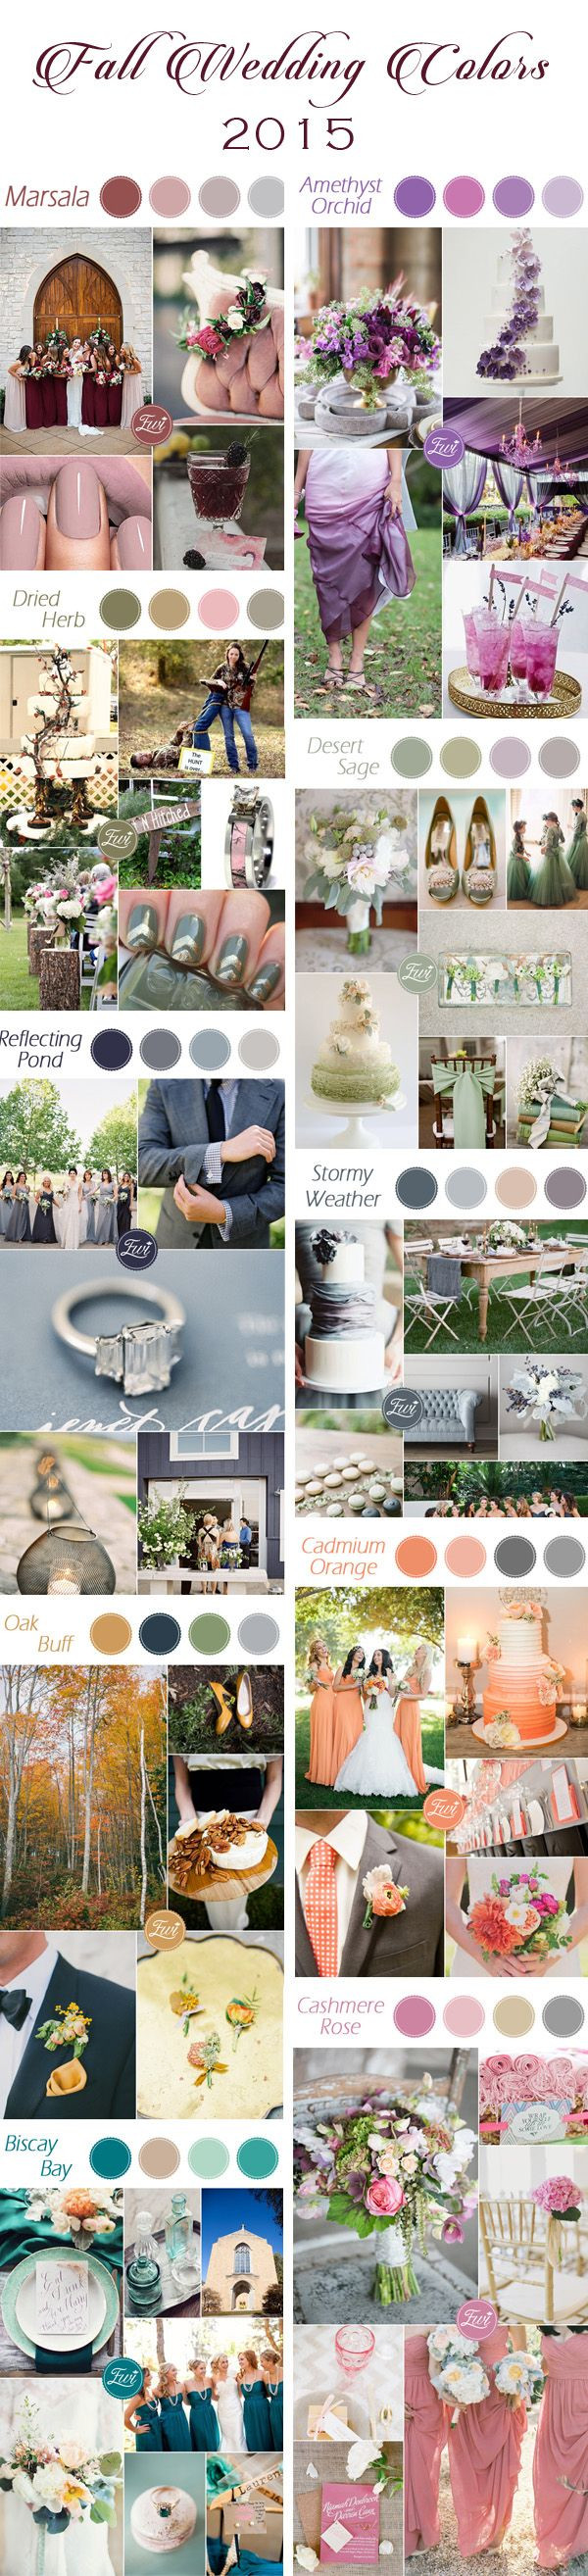 2015 Pantone Fall Color Trends